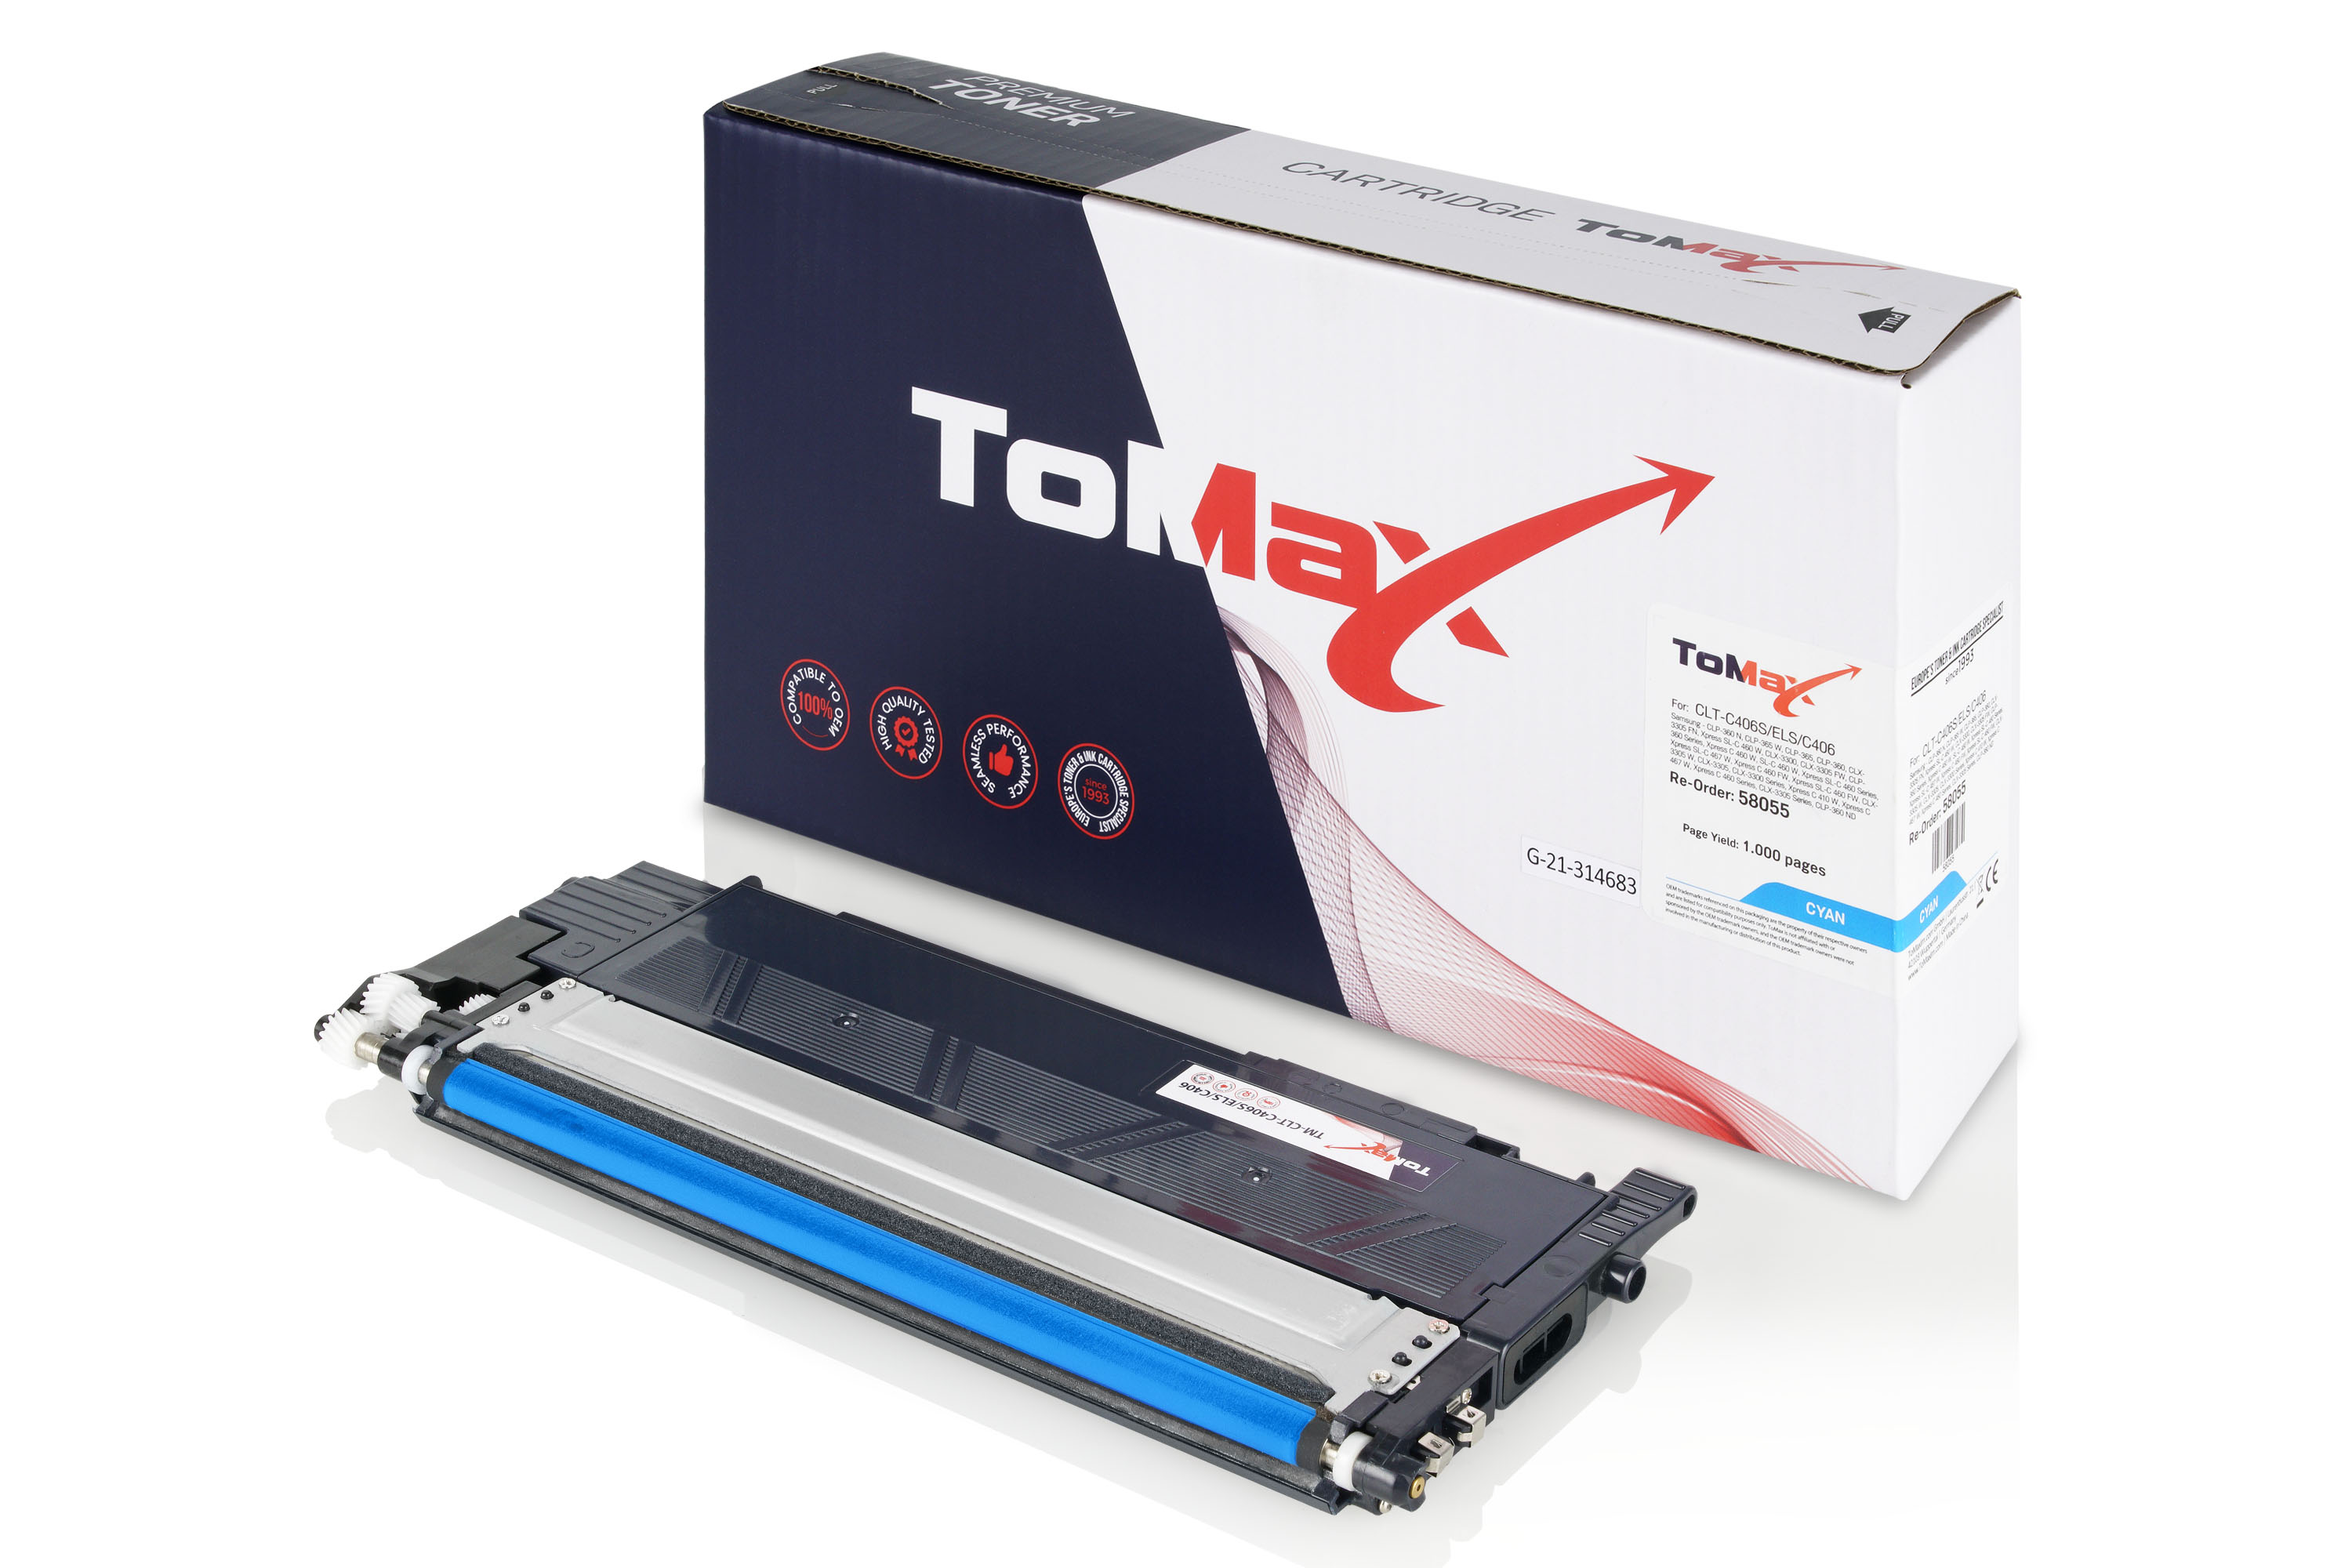 ToMax Premium Toner Cartridge replaces Samsung CLT-C406S (ST984A) / C406S Cyan